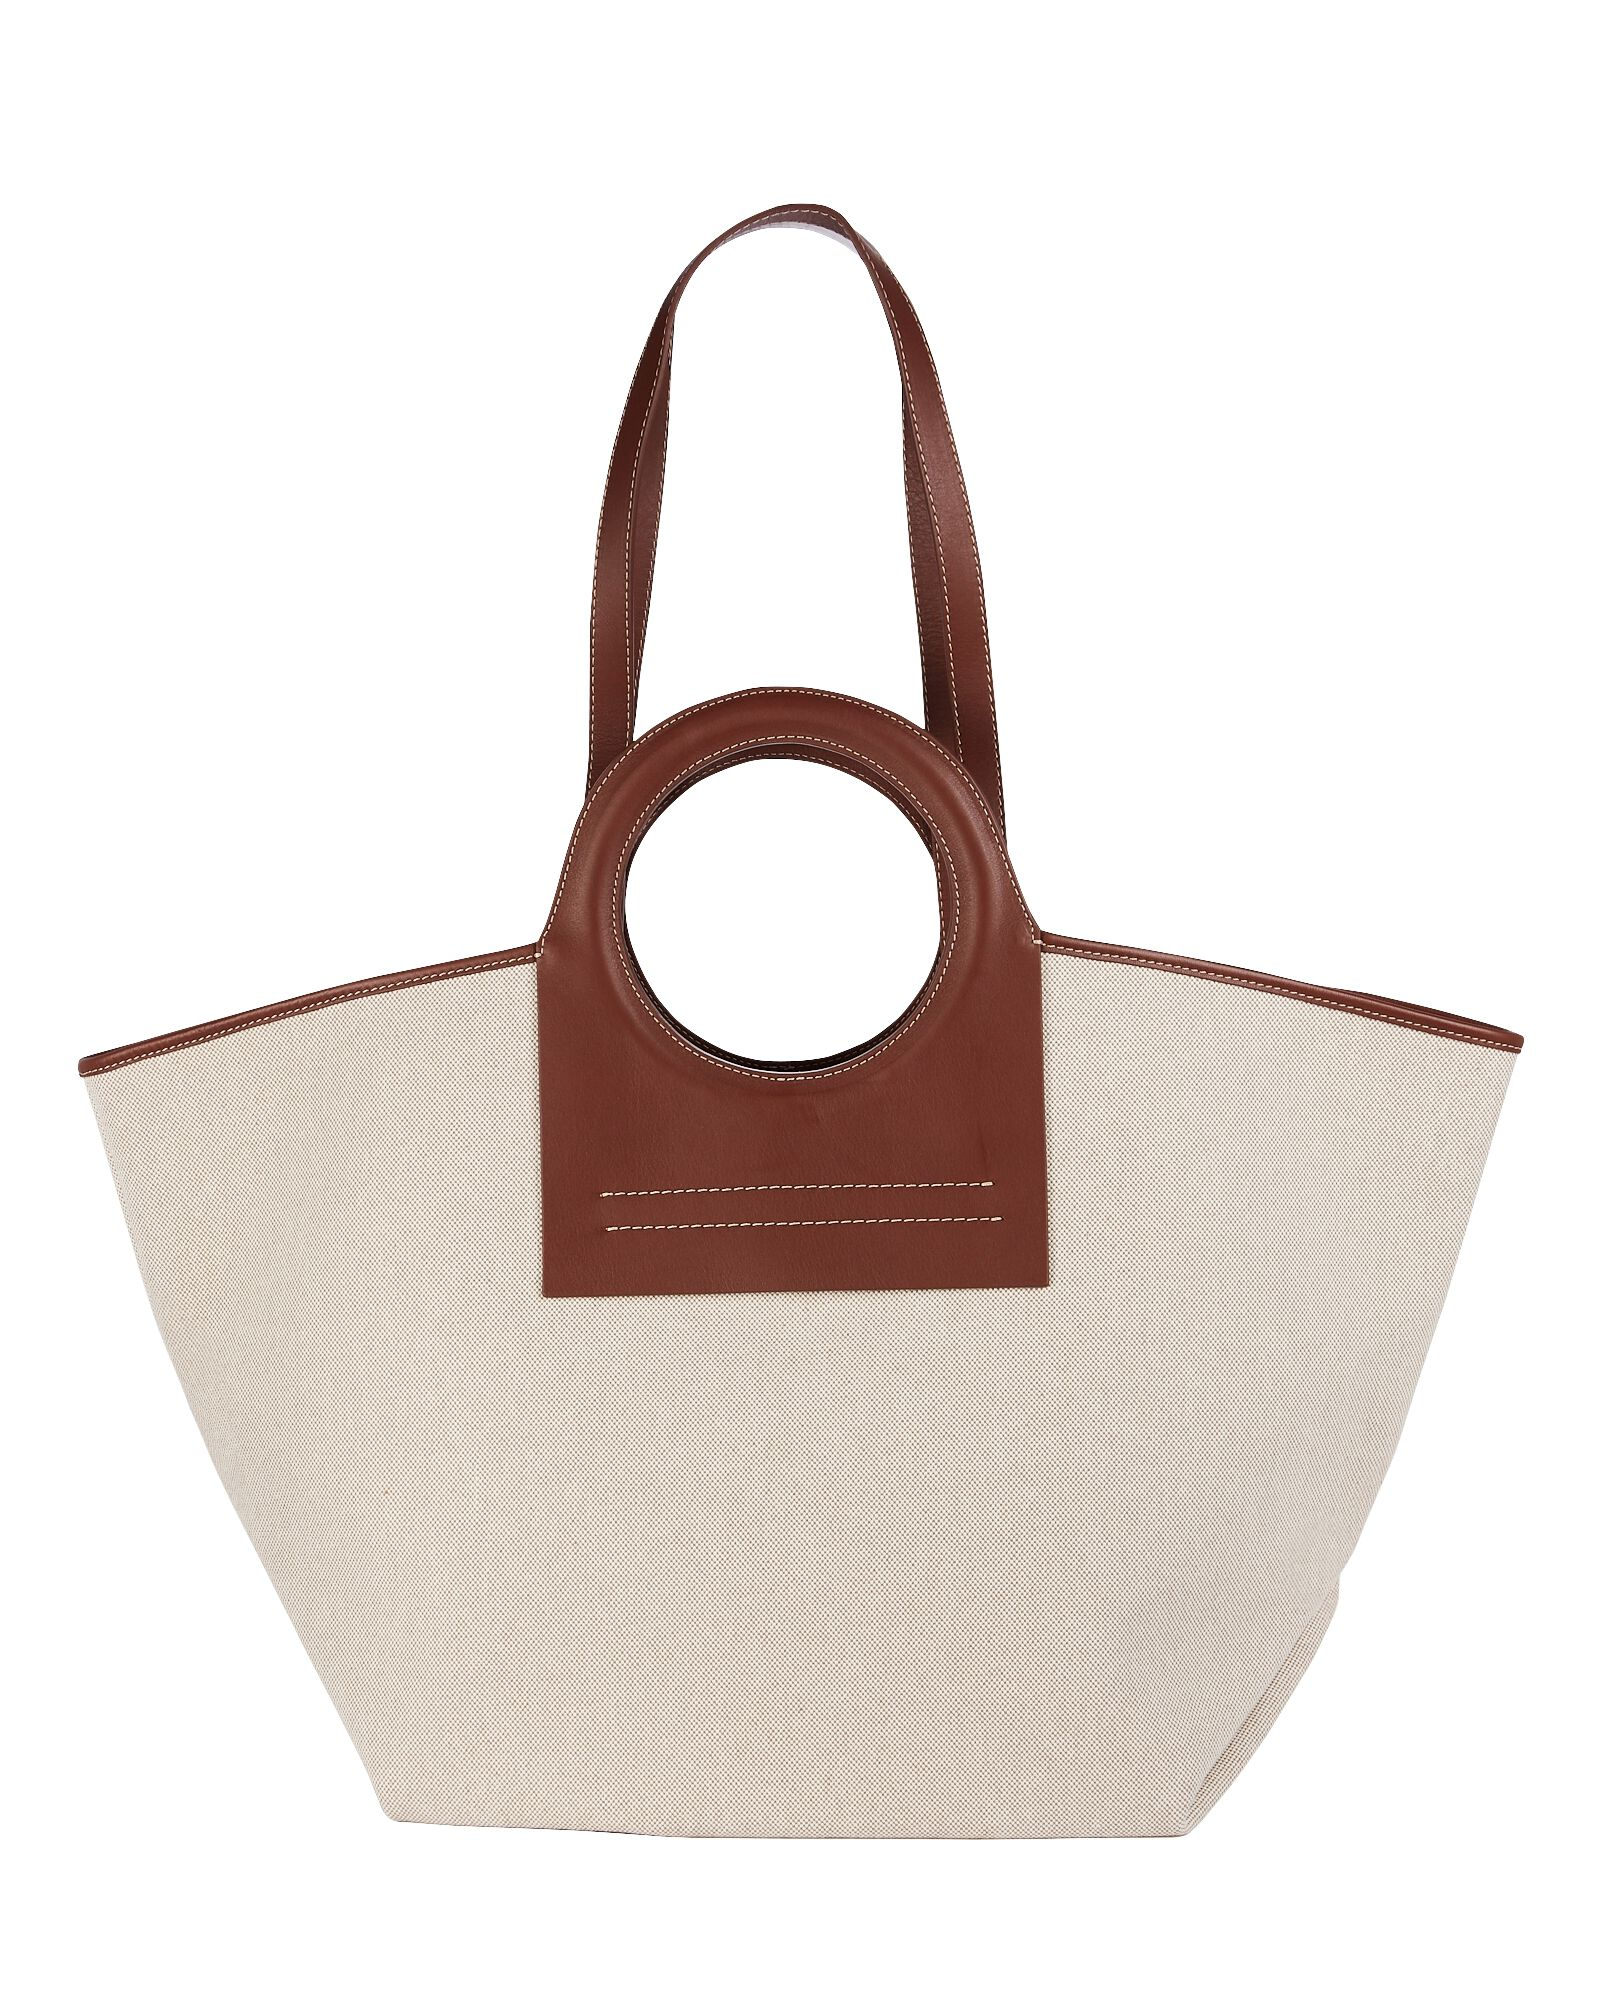 Cala Large Leather-Trimmed Canvas Tote, BEIGE, hi-res